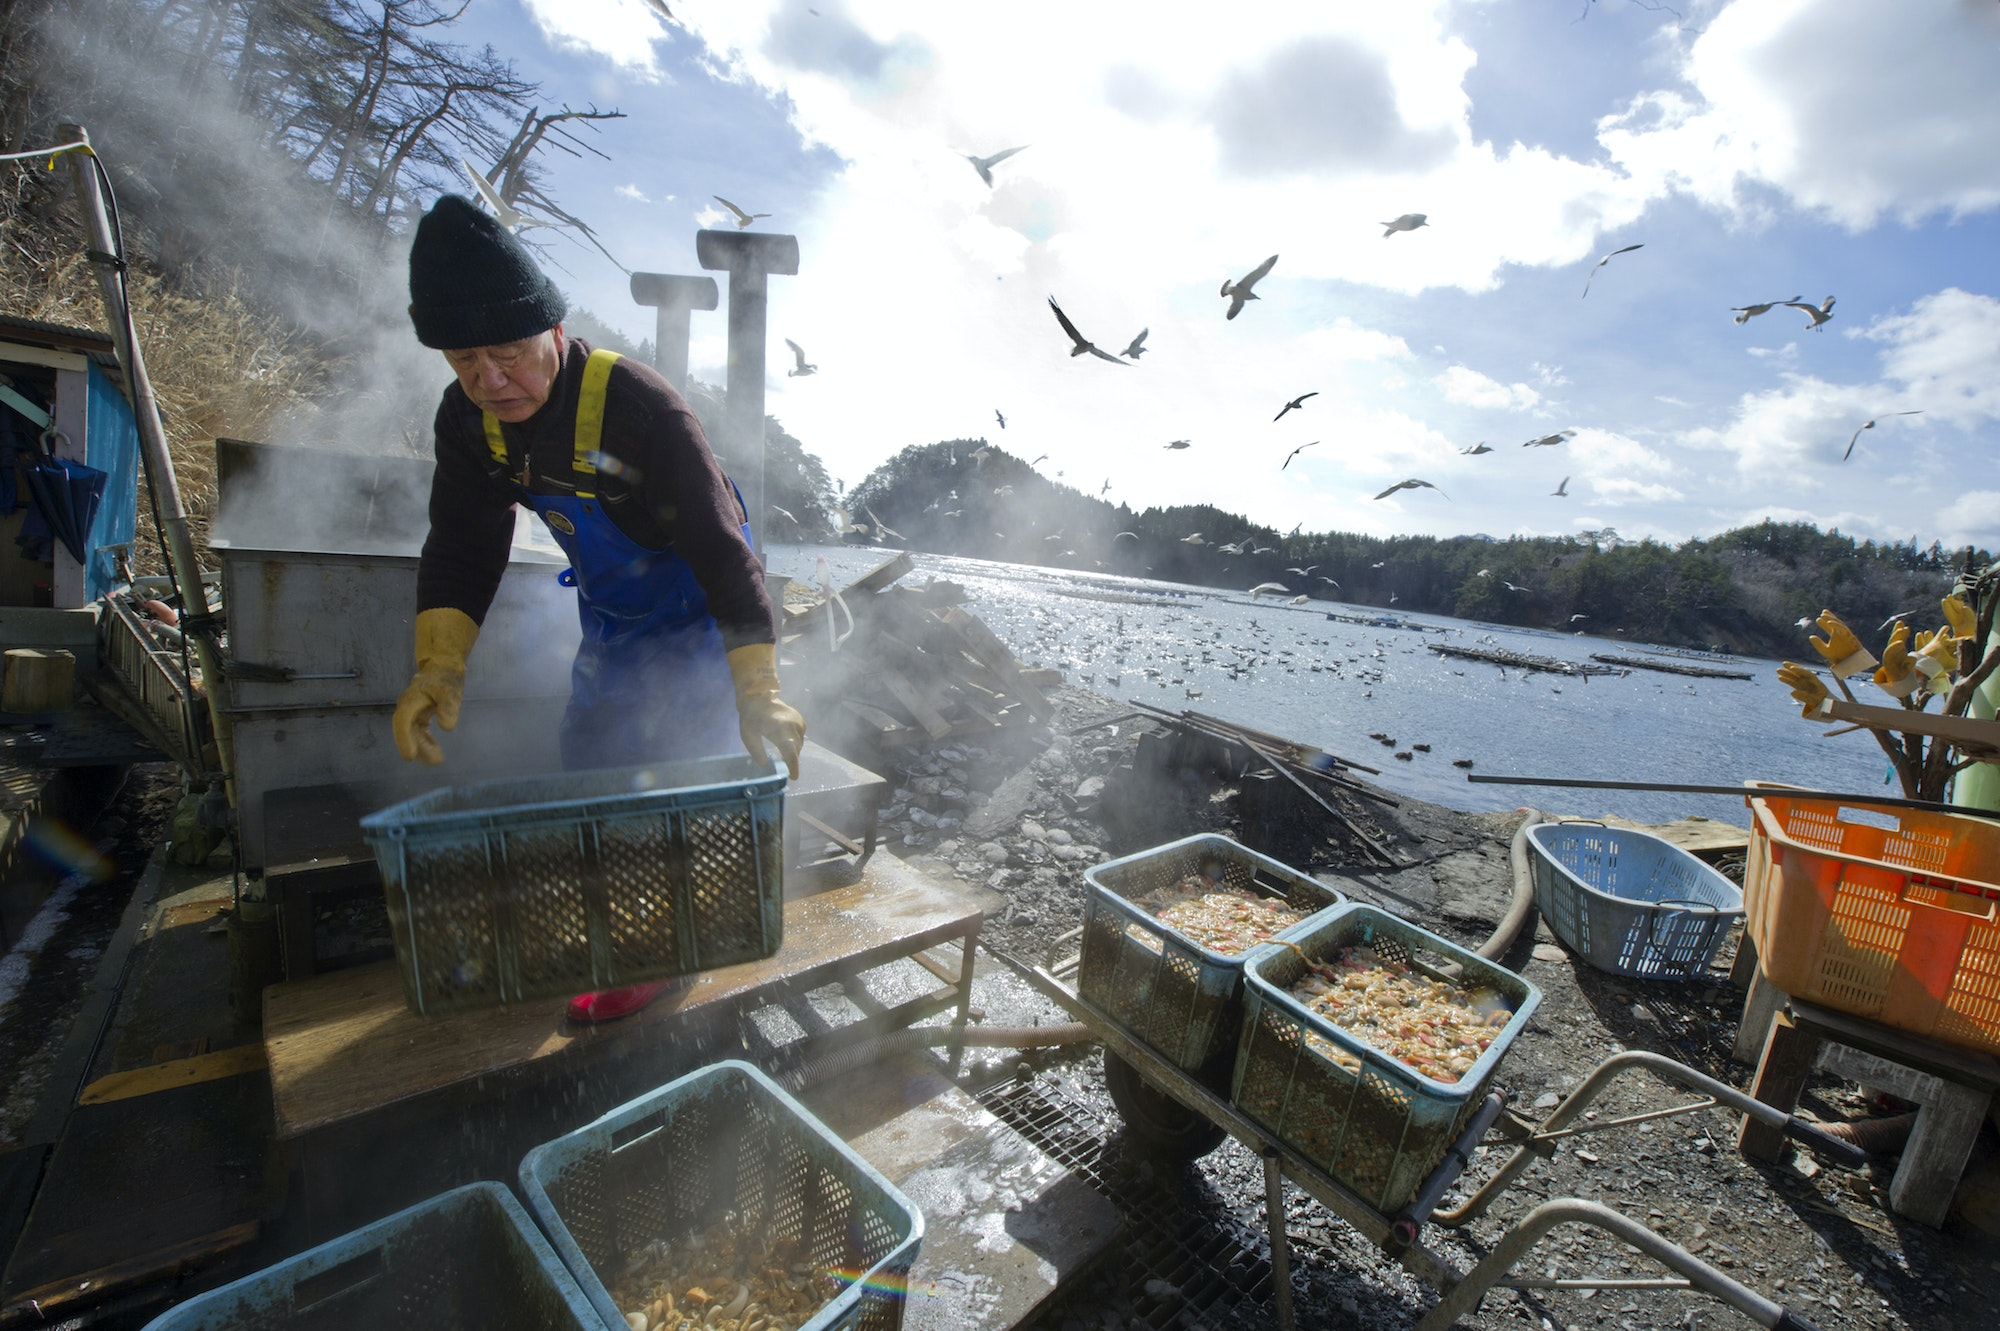 A village fisherman disposes of clam organs at a fishery in Moune Bay, in Japan's Miyagi prefecture.